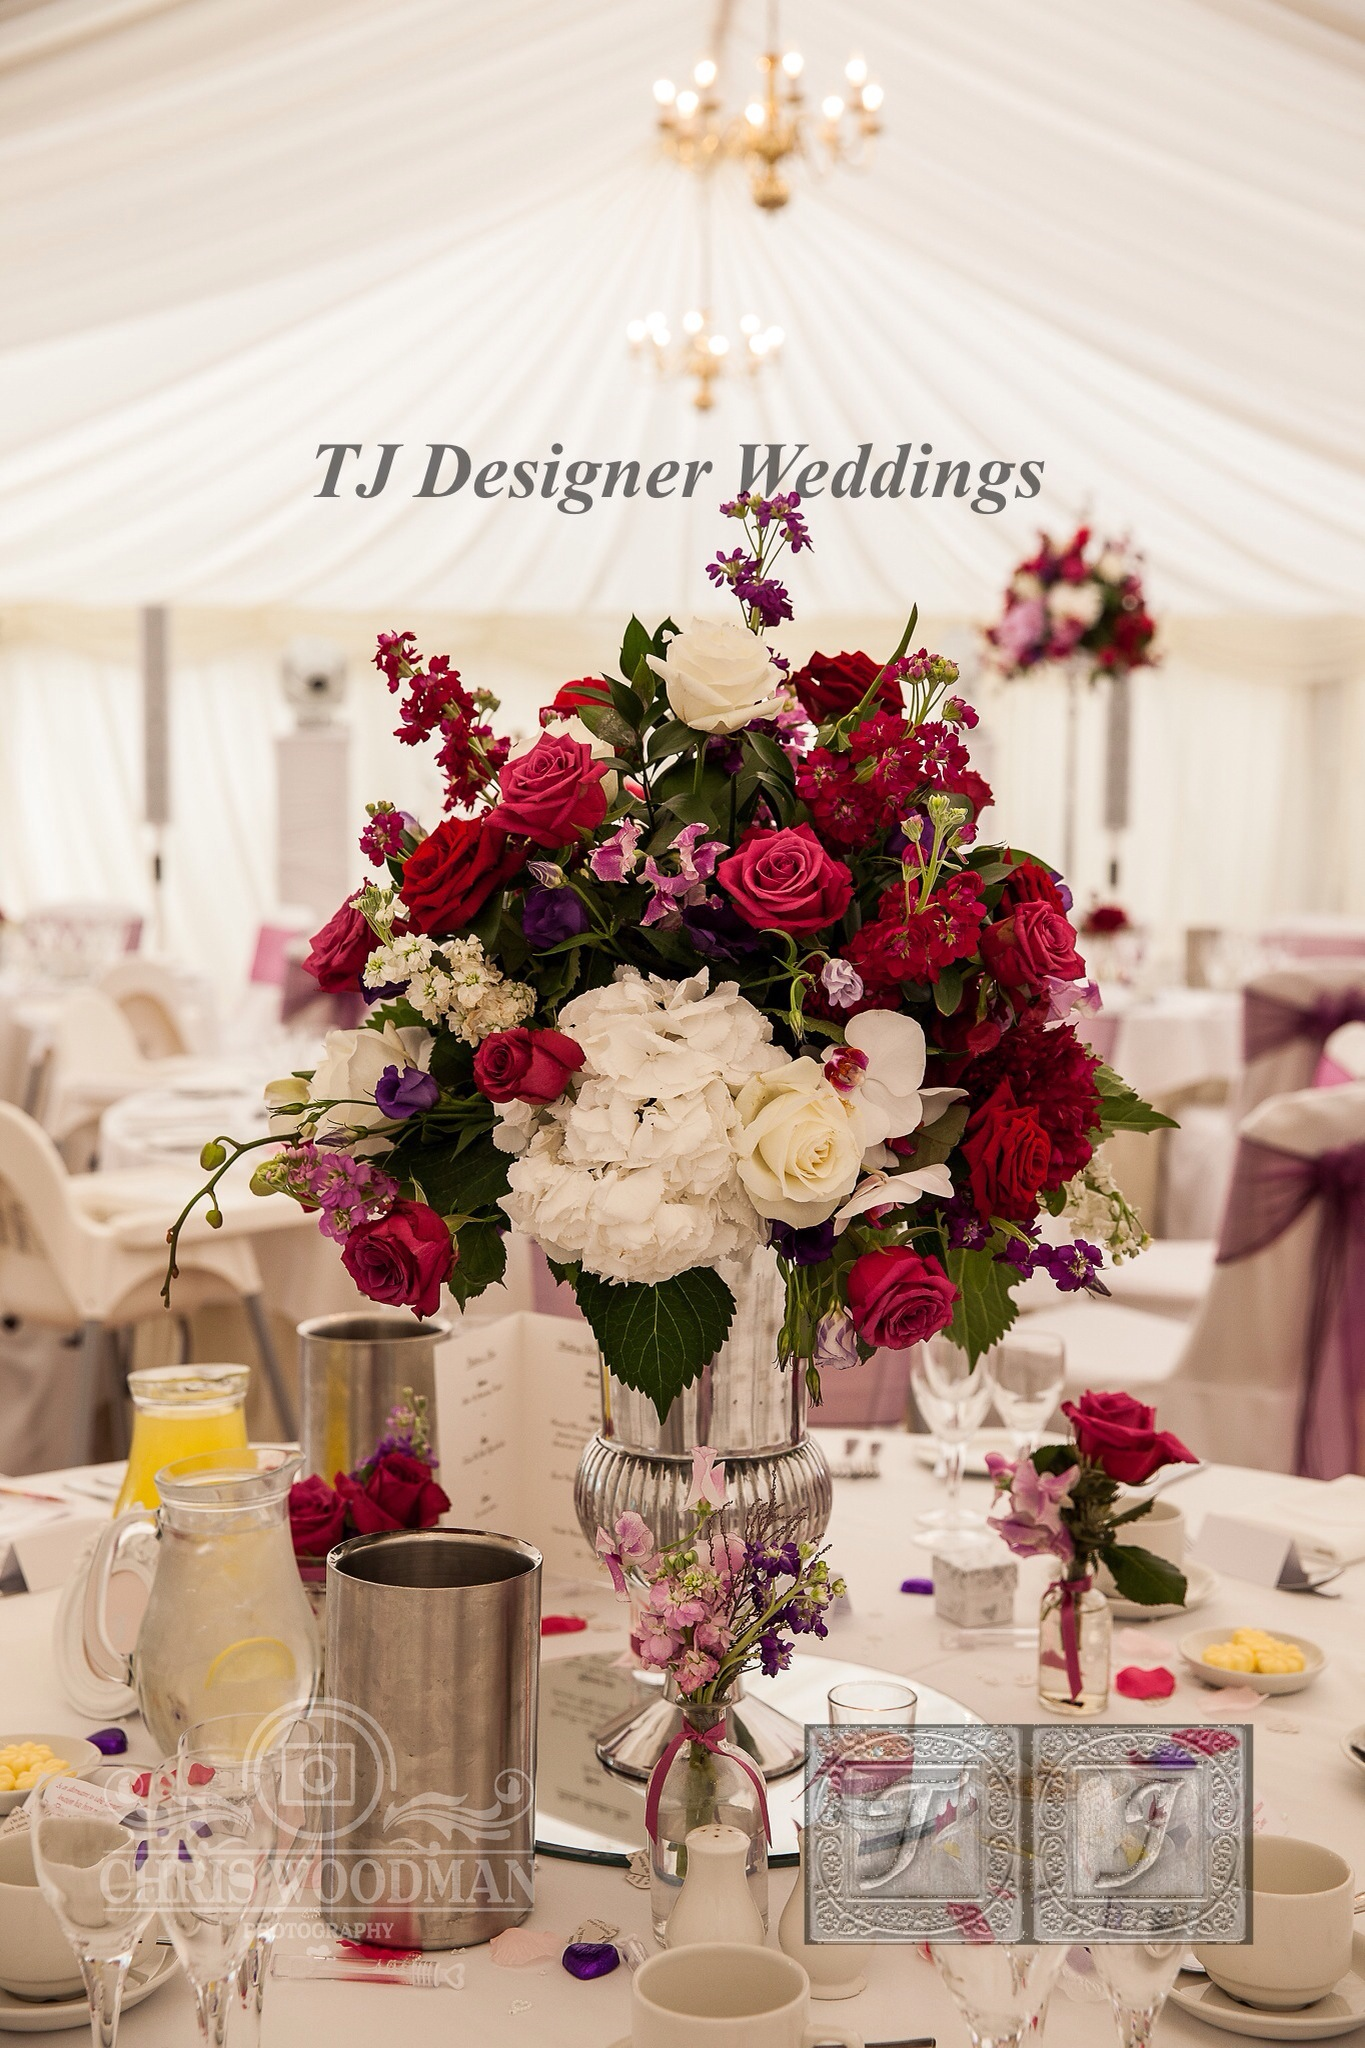 TJ Designer Weddings